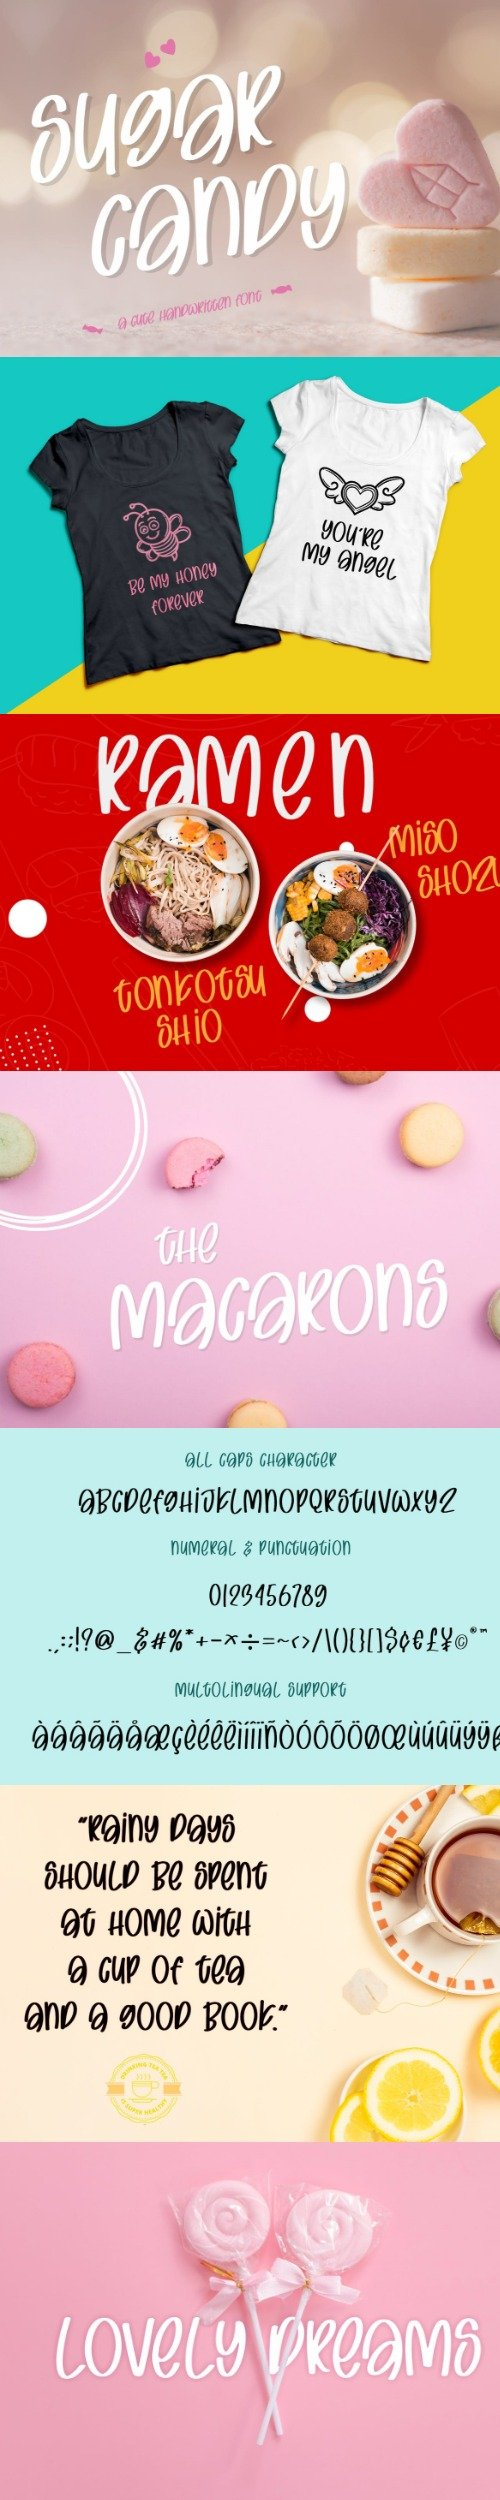 Sugar Candy - Sweet and Quirky Font